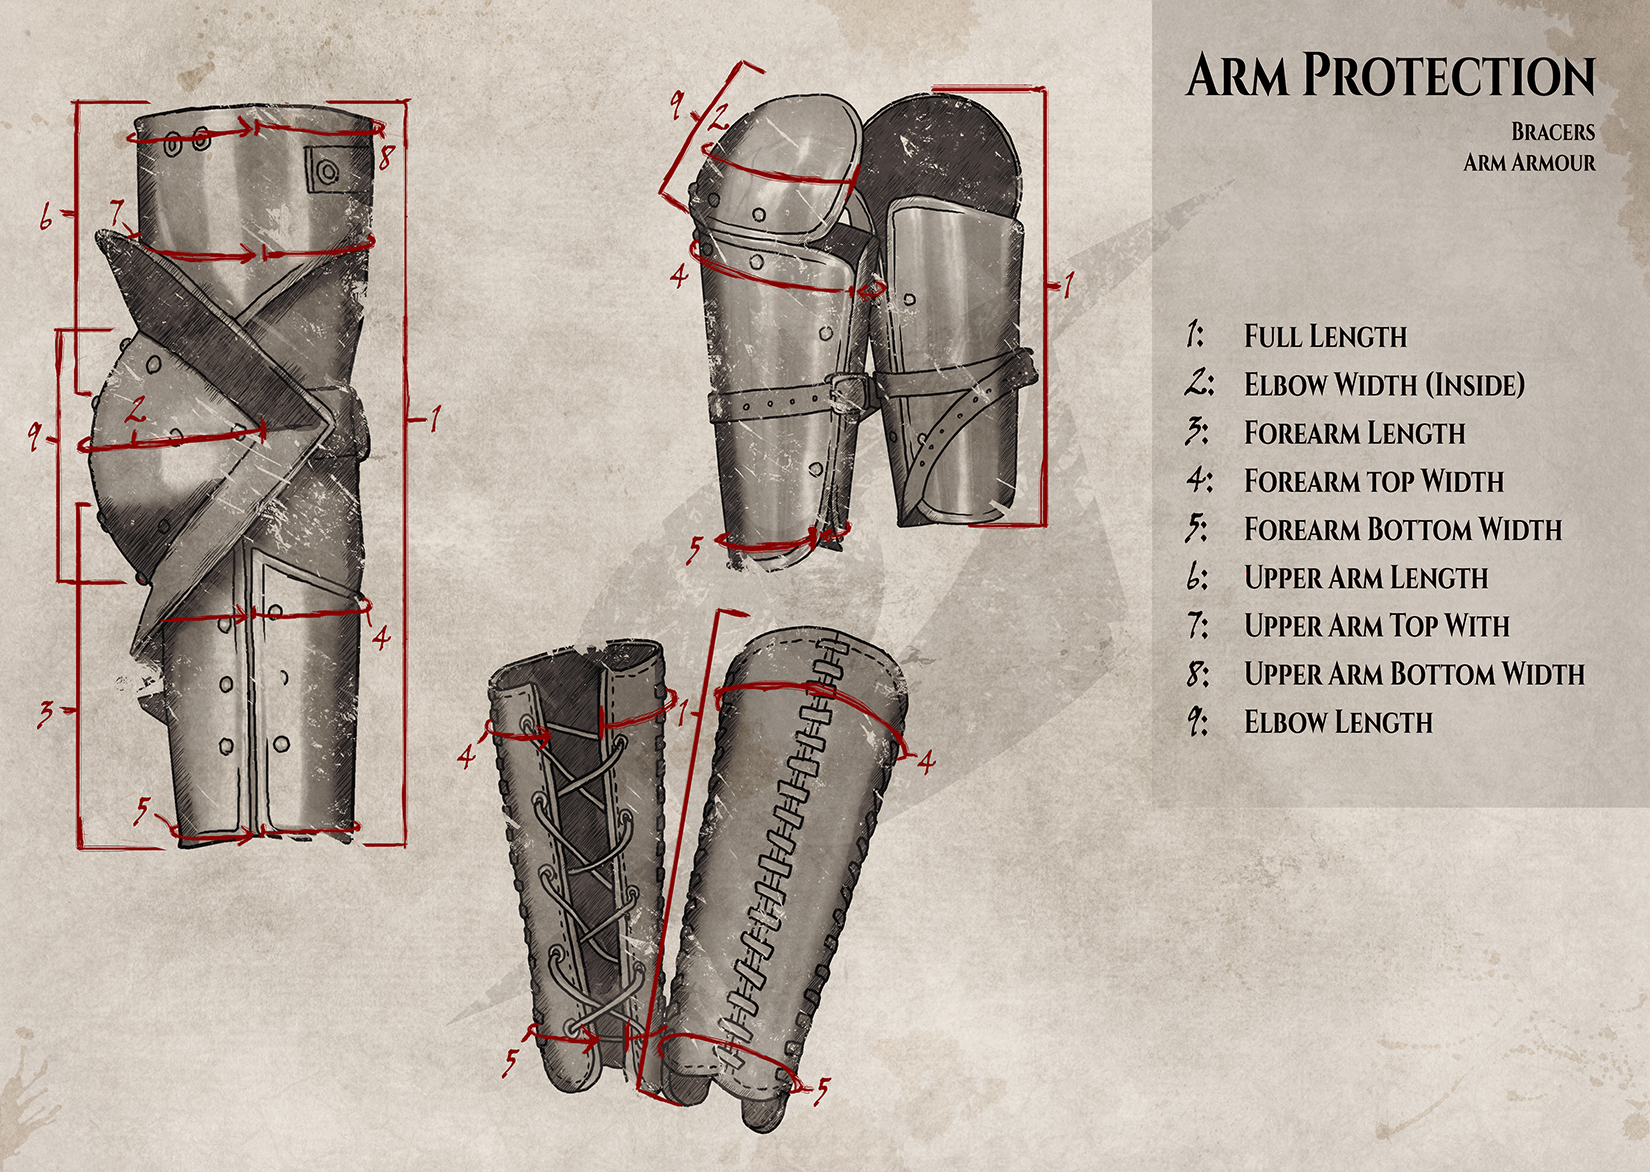 Size-Guide-Arm-ProtectionXqqElZCGIiKig